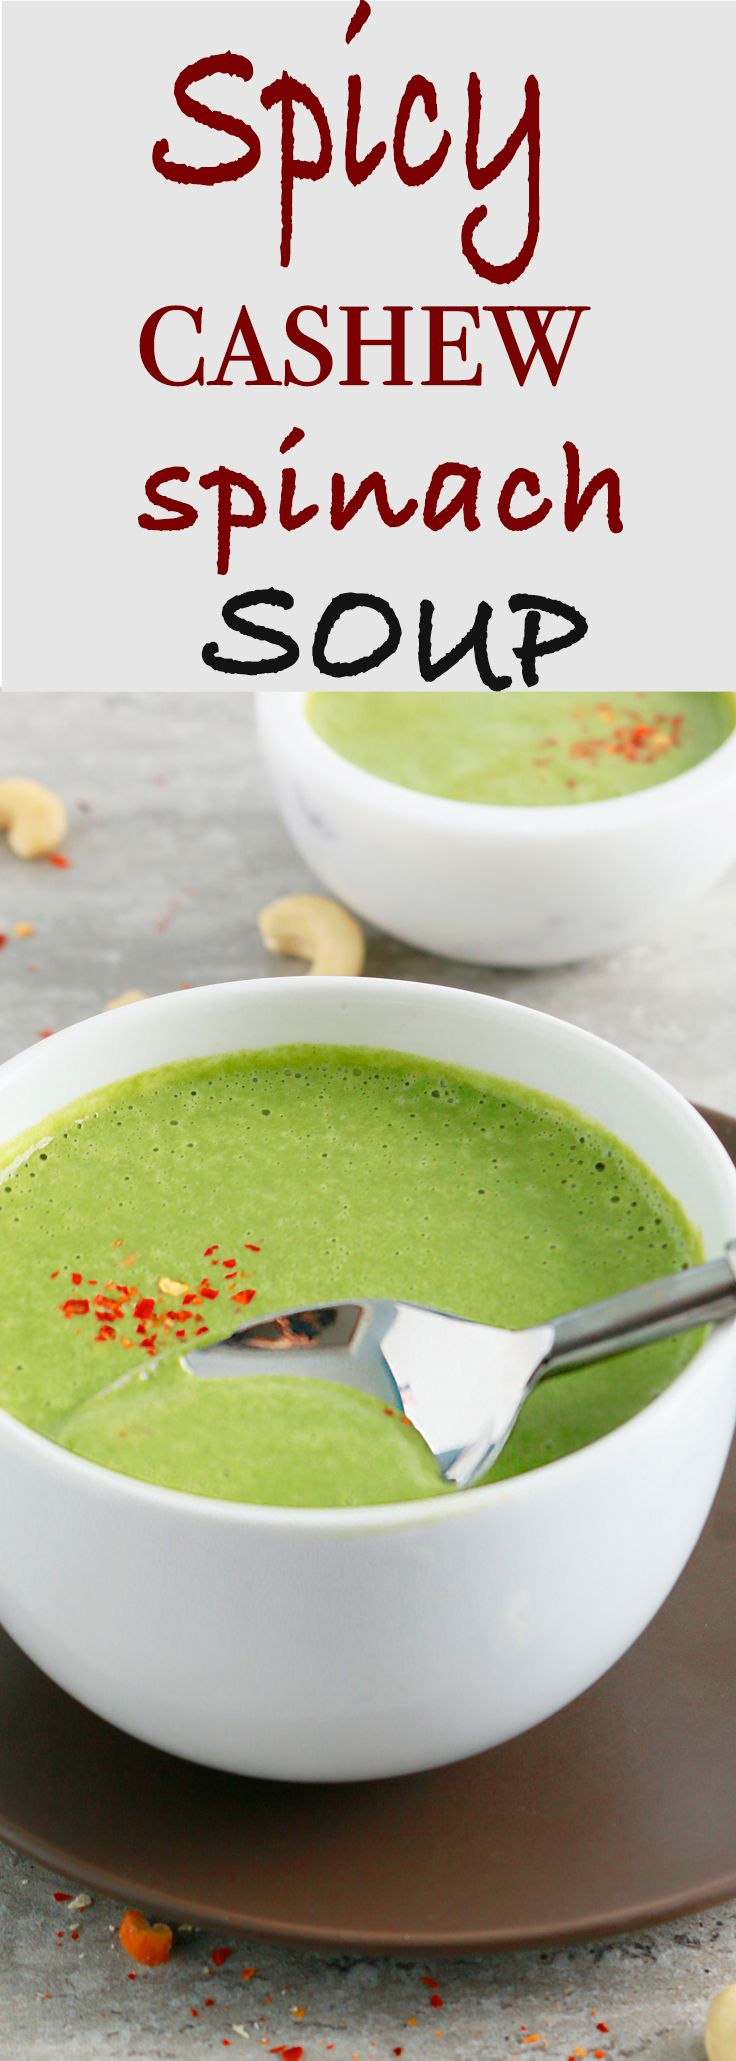 easy spinach soup recipe| indian soup recipes | dairy free spinach soup| indian spinach soup| spinach soup recipe | healthy spinach soup recipe|